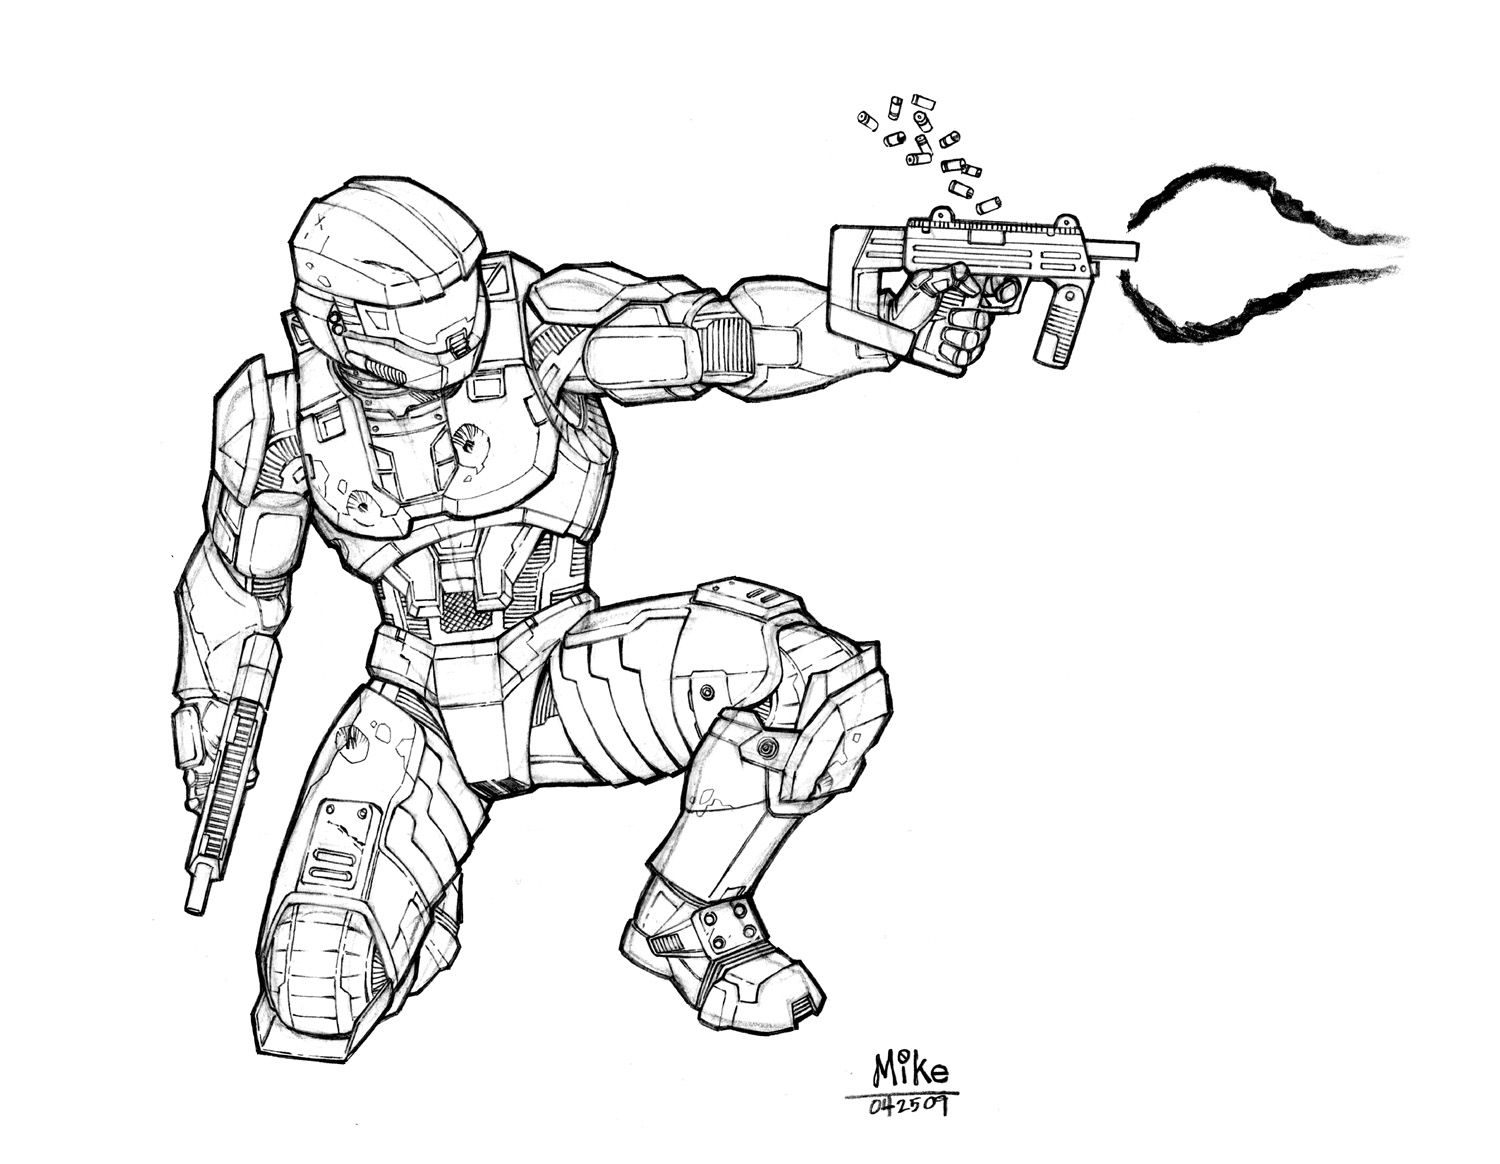 Master Chief By The Other Mike Jpg 1 500 1 164 Pixels Halo Drawings Halo Master Chief Halo Armor